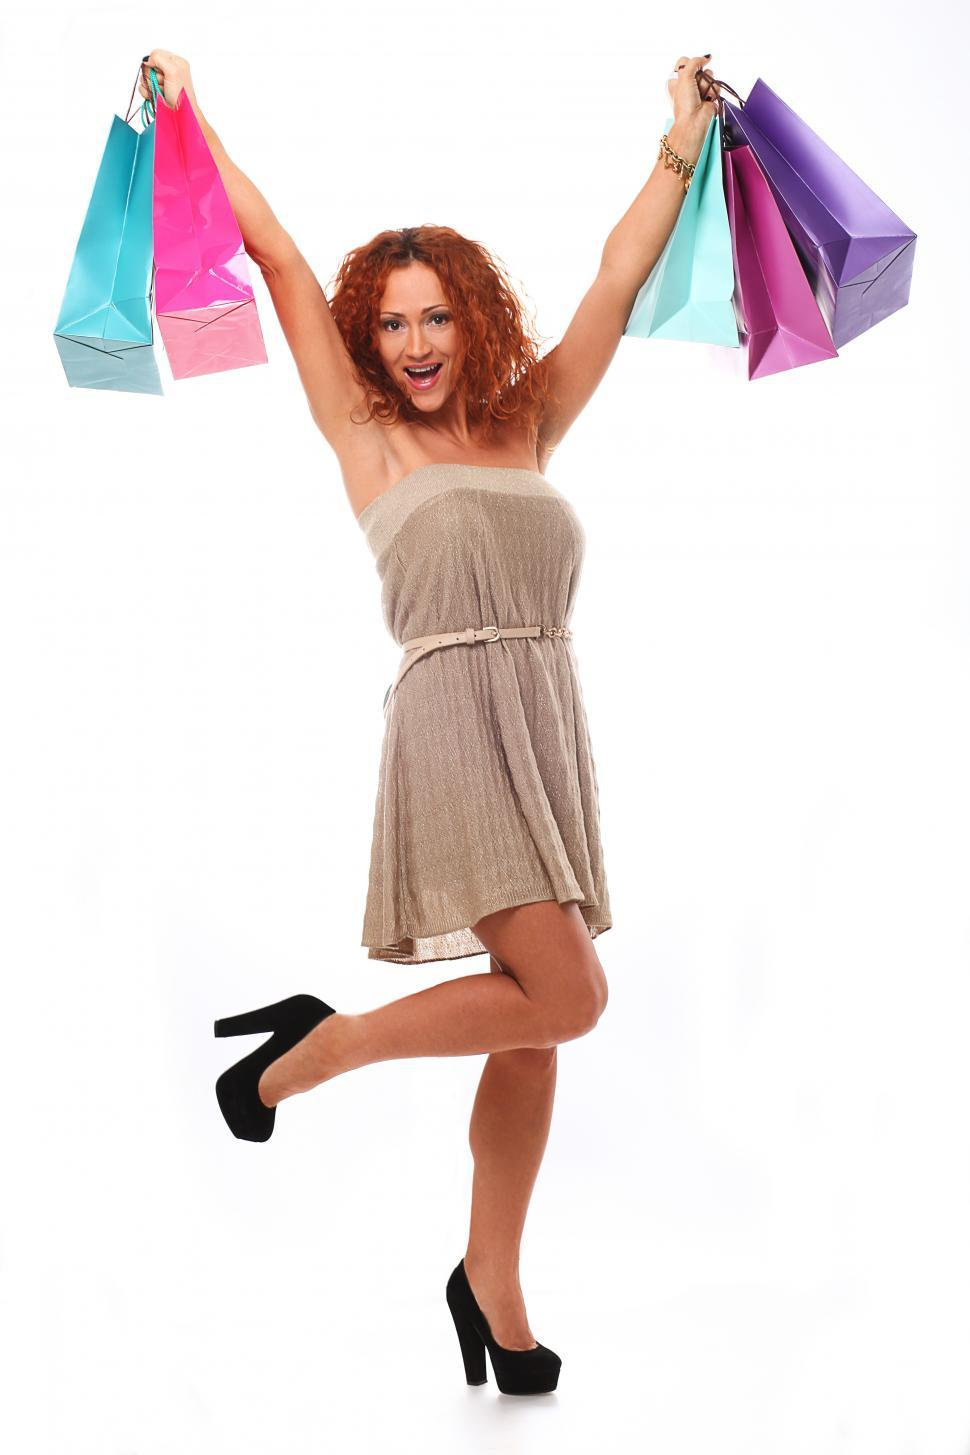 Download Free Stock Photo of Woman hoisting several shopping bags